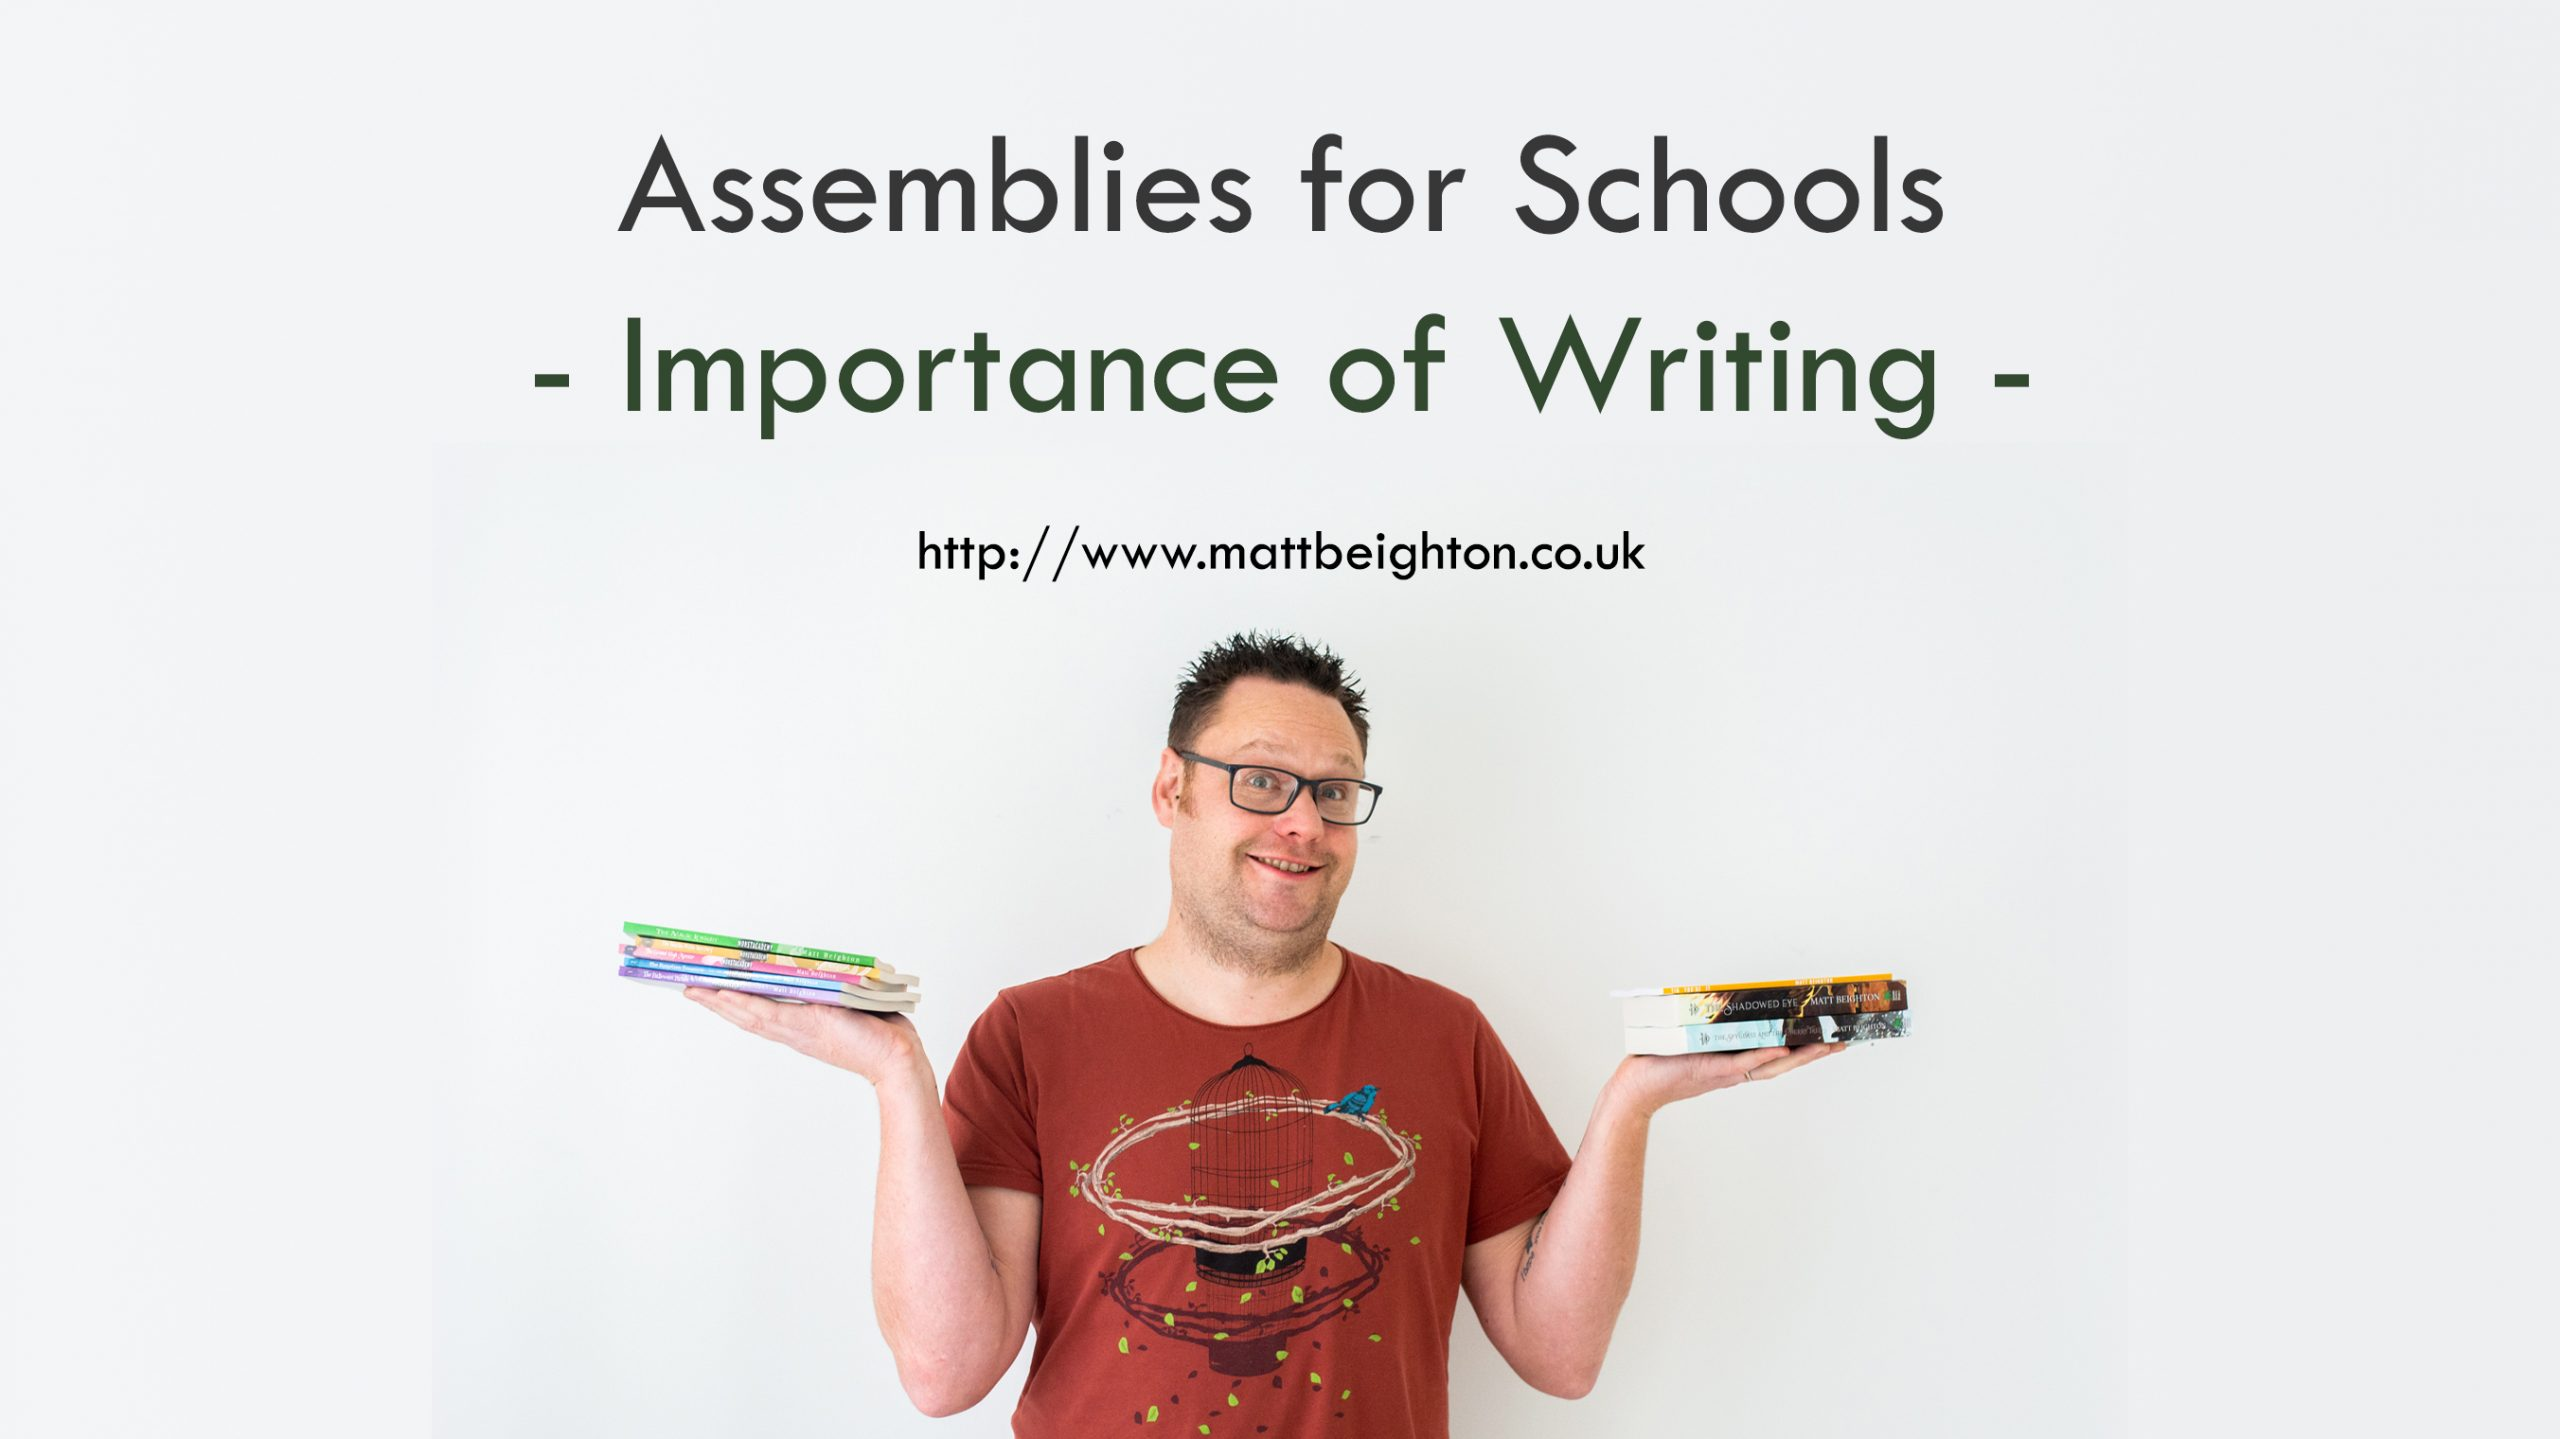 Assemblies for Schools - The importance of writing